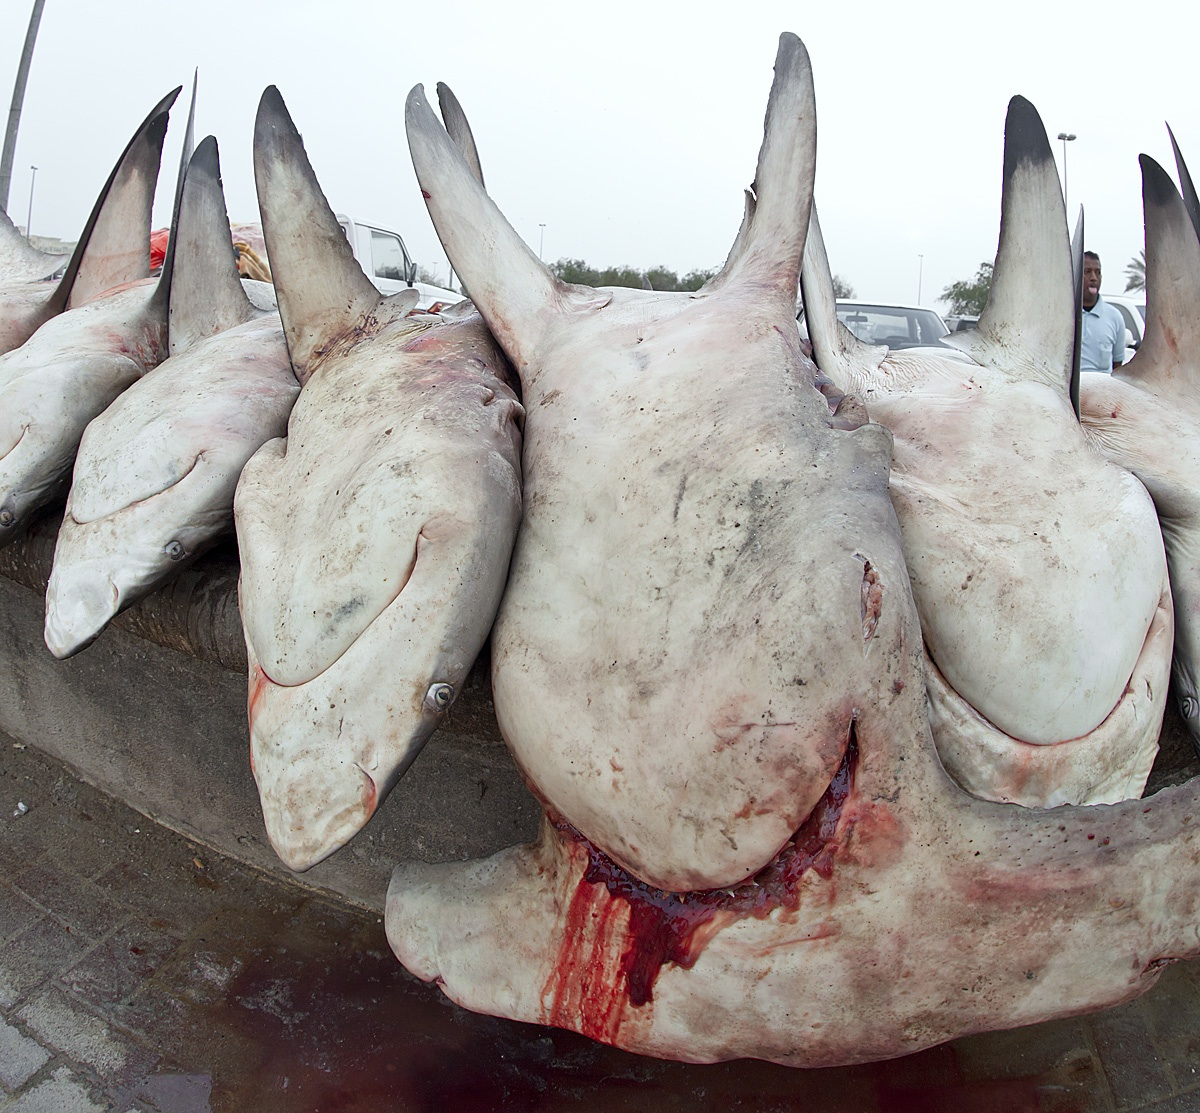 Sharks Under Attack In Middle East